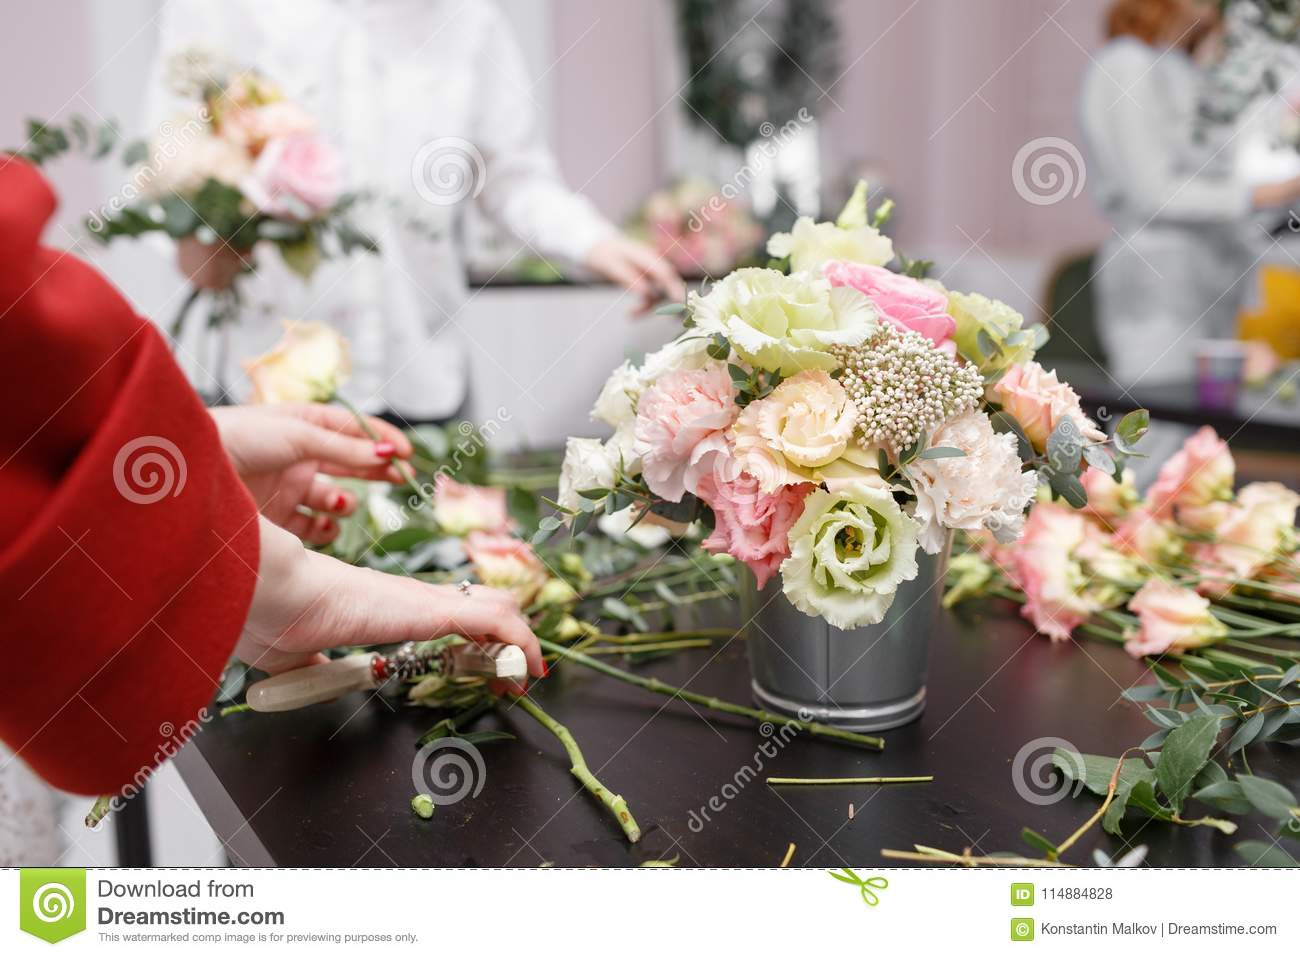 Master Class On Making Bouquets Spring Bouquet Learning Flower